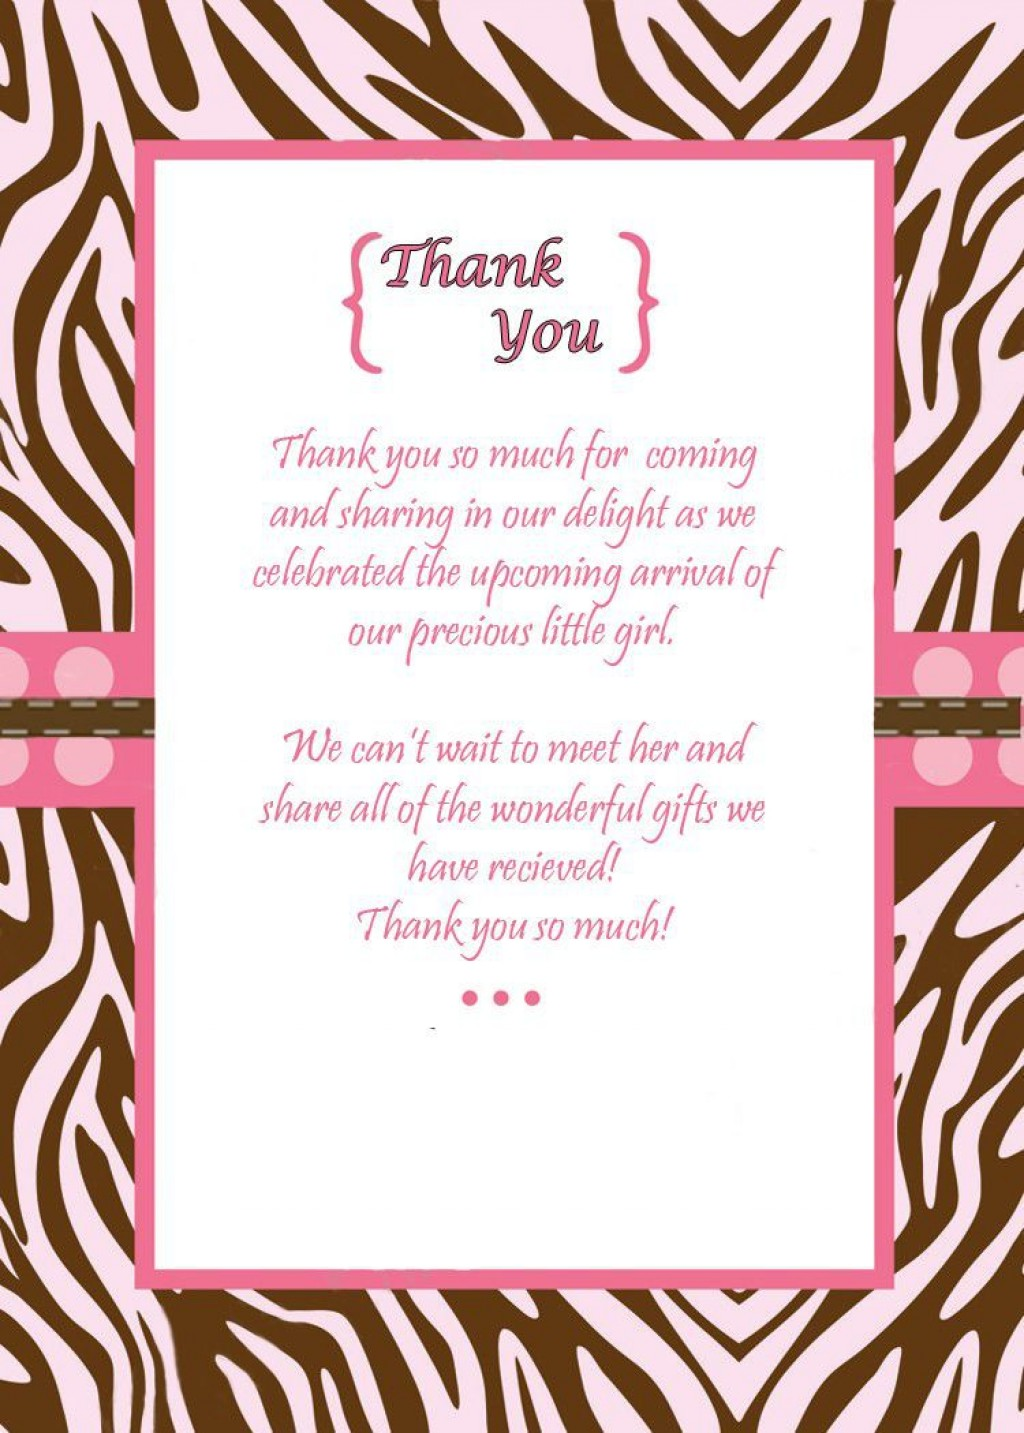 009 Phenomenal Thank You Note Template For Baby Shower Gift Highest Clarity  Card Letter SampleLarge